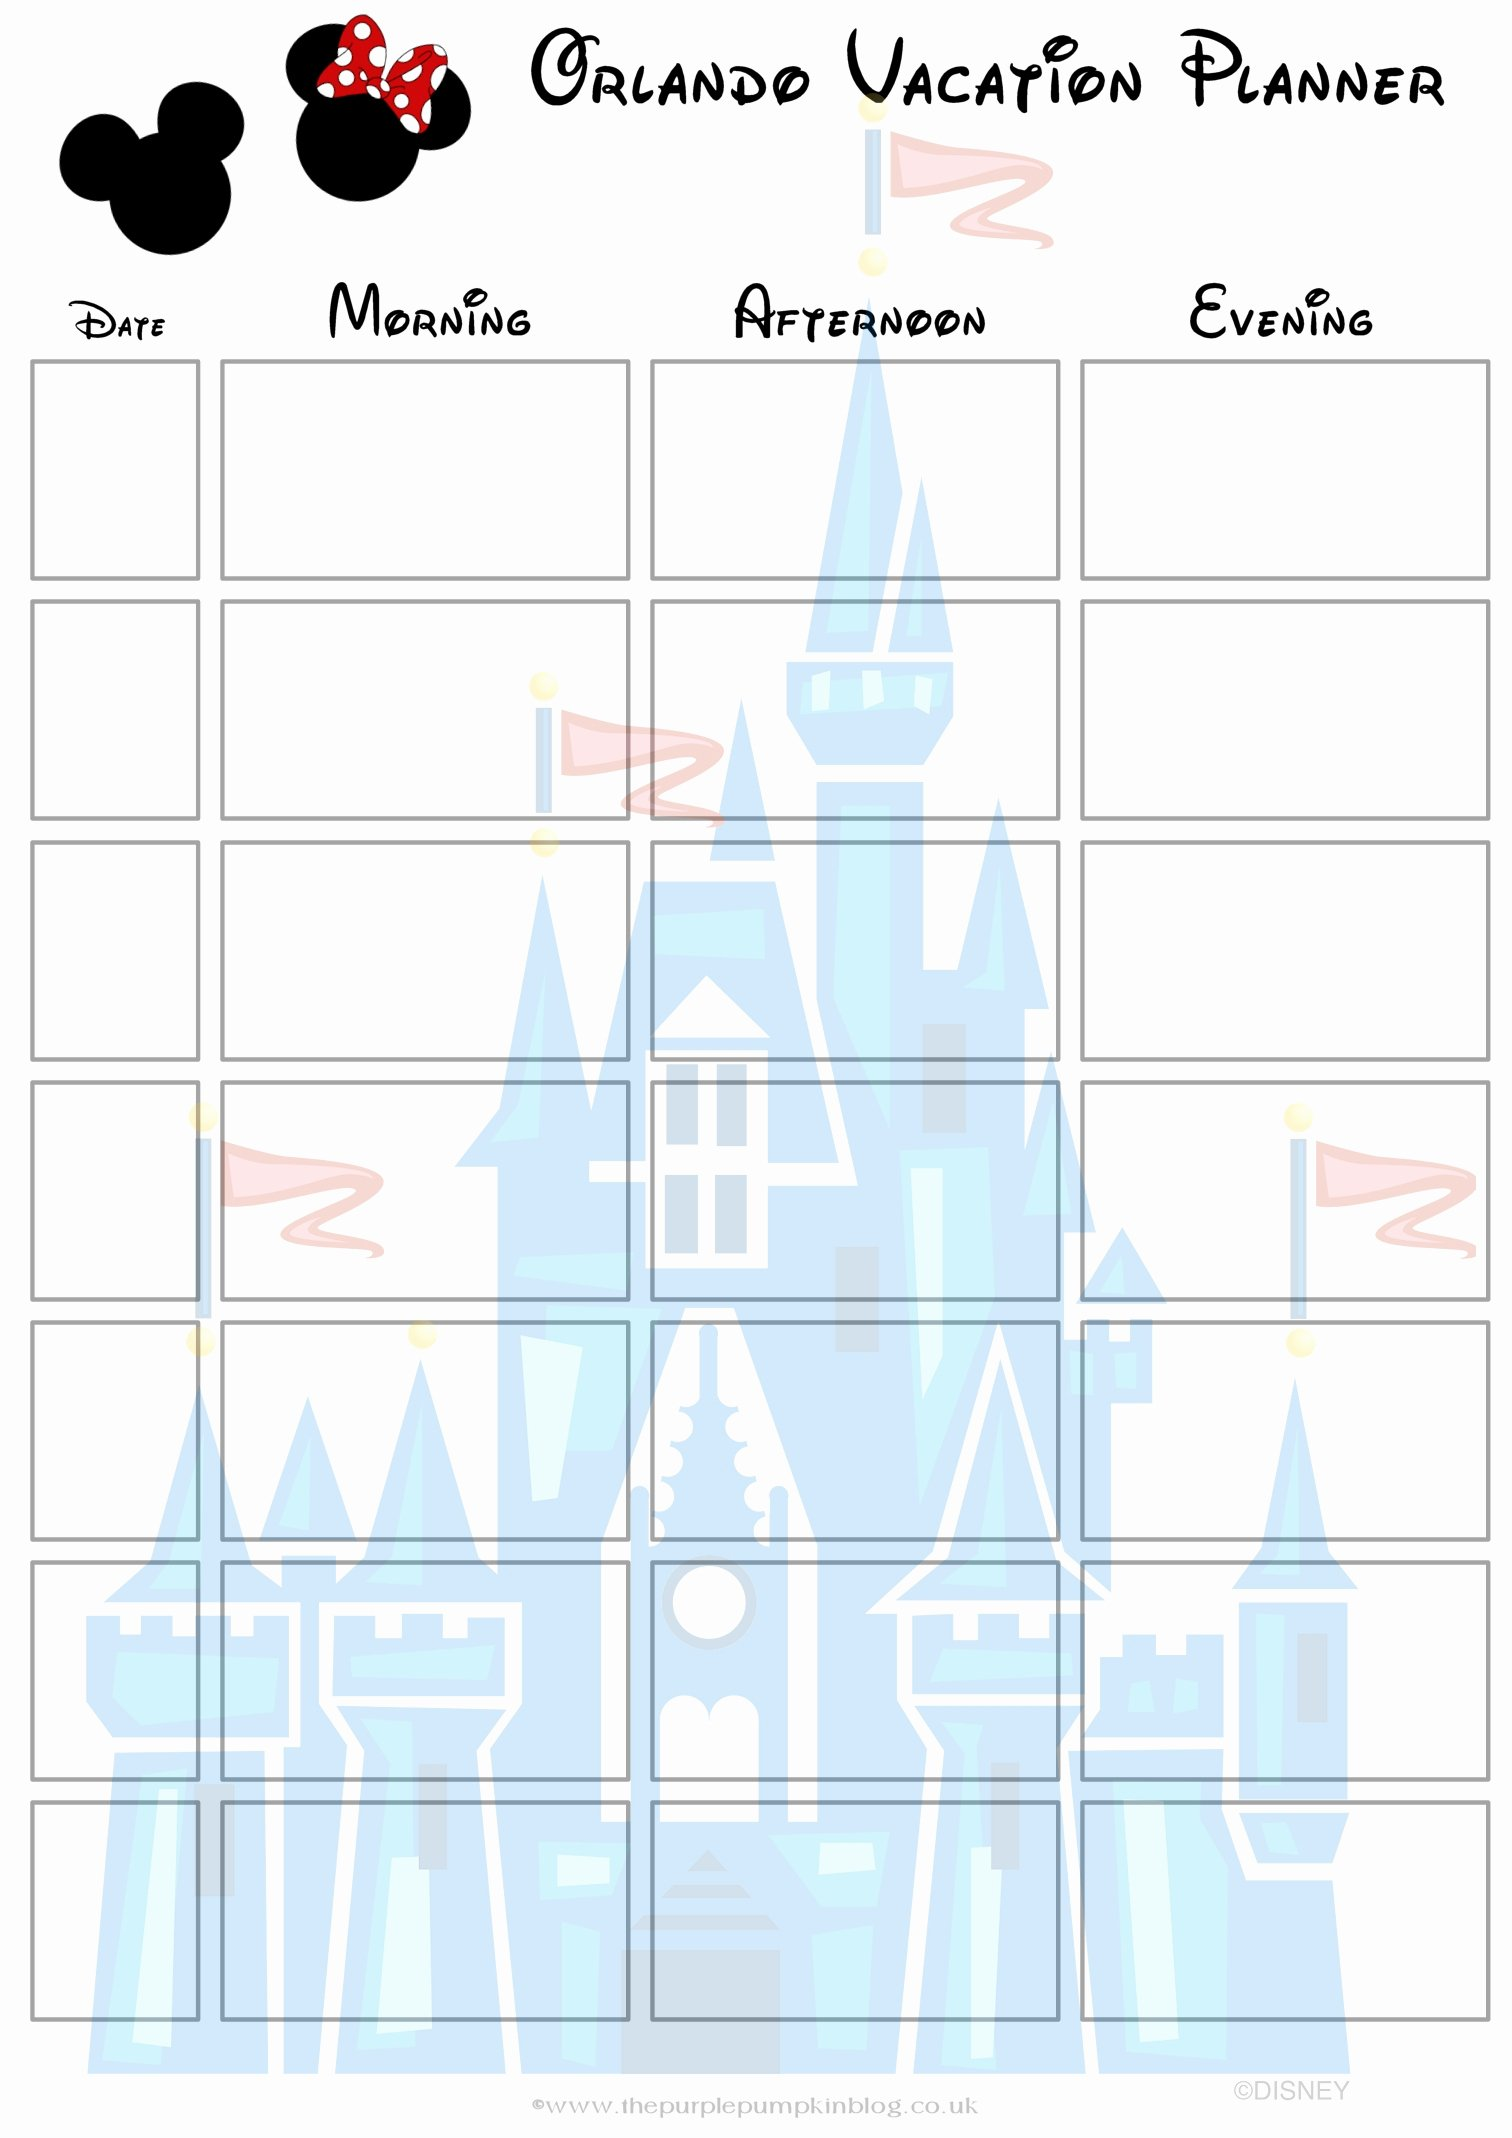 Disney Vacation Planner Template Best Of orlando Walt Disney World Vacation Planner Free Printable